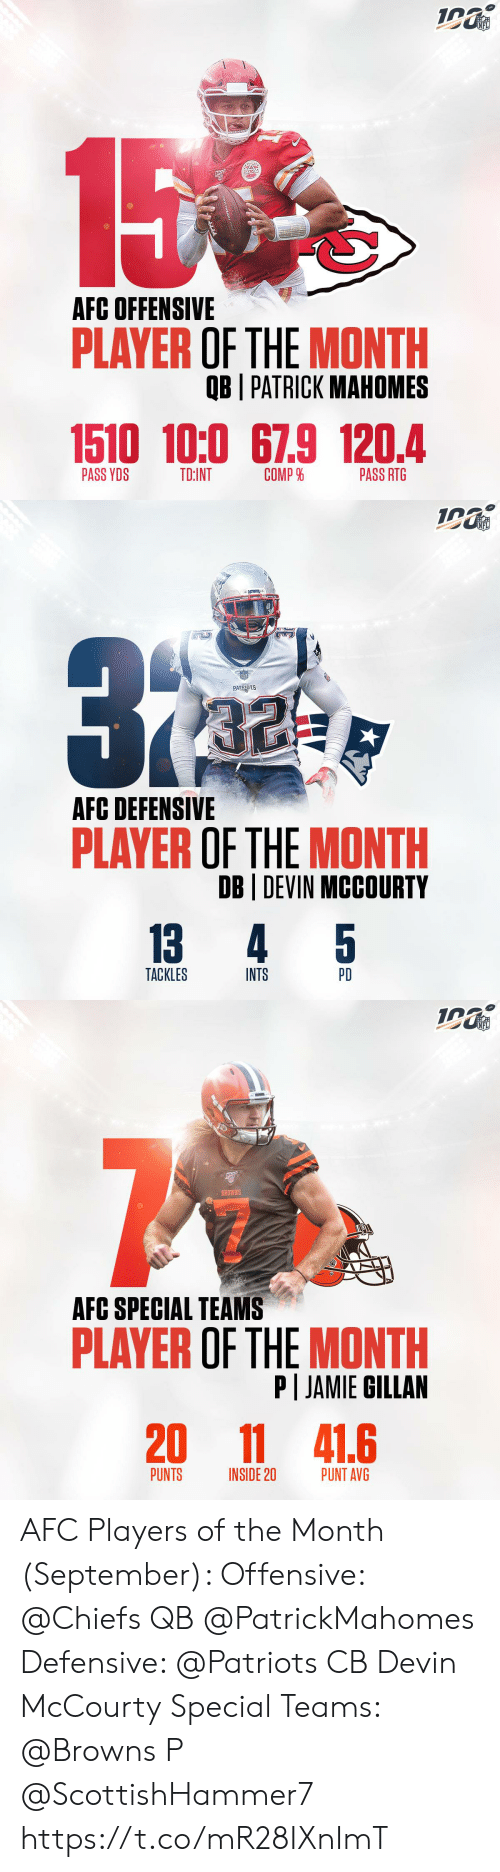 comp: NFL  15  AFC OFFENSIVE  PLAYER OF THE MONTH  OB I PATRICK MAHOMES  1510 10:0 67.9 120.4  COMP %  PASS YDS  TD:INT  PASS RTG   NFL  ATROTE  PATRIOTS  AFC DEFENSIVE  PLAYER OF THE MONTH  DB DEVIN MCCOURTY  5  13  4  TACKLES  INTS  PD   NFL  BROWNS  AFC SPECIAL TEAMS  PLAYER OF THE MONTH  P JAMIE GILLAN  20  11 41.6  PUNTS  PUNT AVG  INSIDE 20 AFC Players of the Month (September):   Offensive: @Chiefs QB @PatrickMahomes  Defensive: @Patriots CB Devin McCourty Special Teams: @Browns P @ScottishHammer7 https://t.co/mR28IXnImT